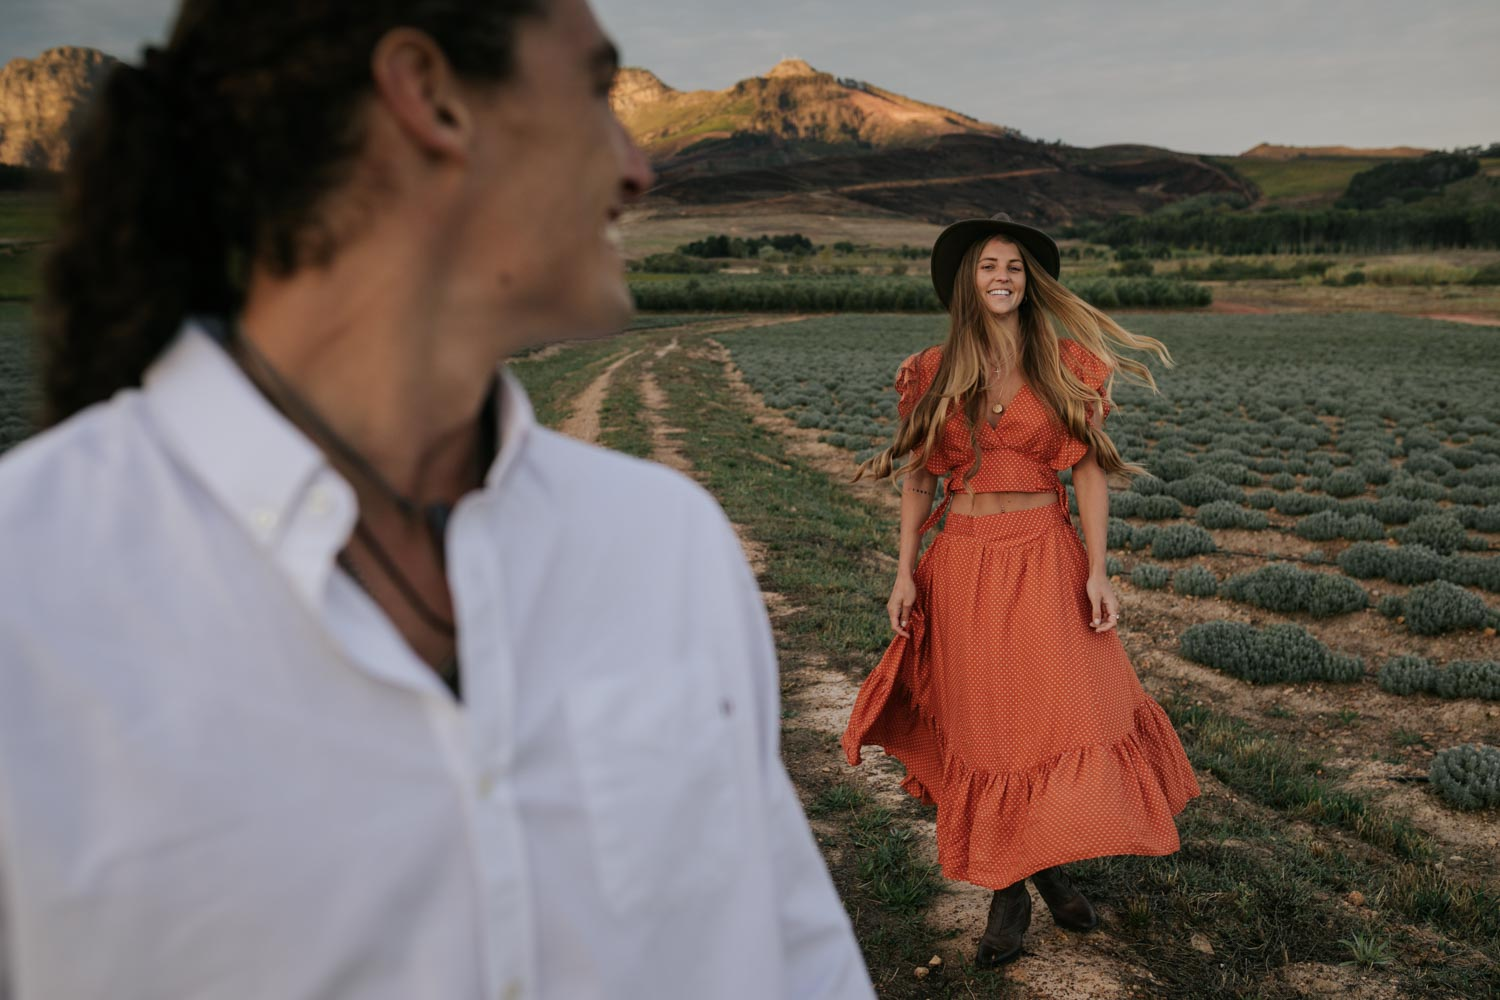 Boho Gypsy Engagement Photo Shoot Outfit Orange Free People Dress Felt Hat